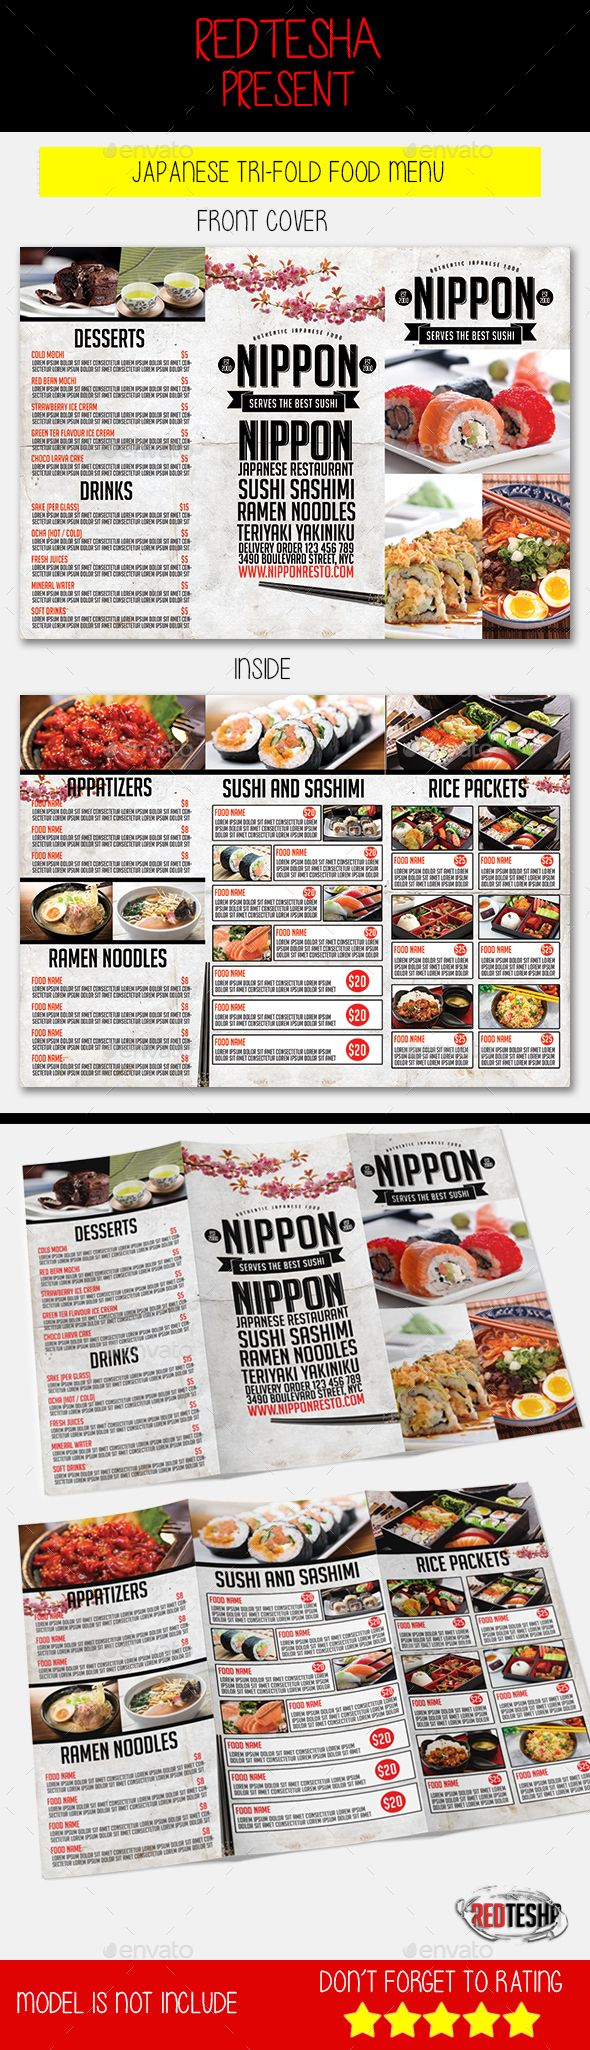 Japanese Trifold Menu Design Template PSD. Download here: http://graphicriver.net/item/japanese-trifold-menu/16397094?ref=ksioks